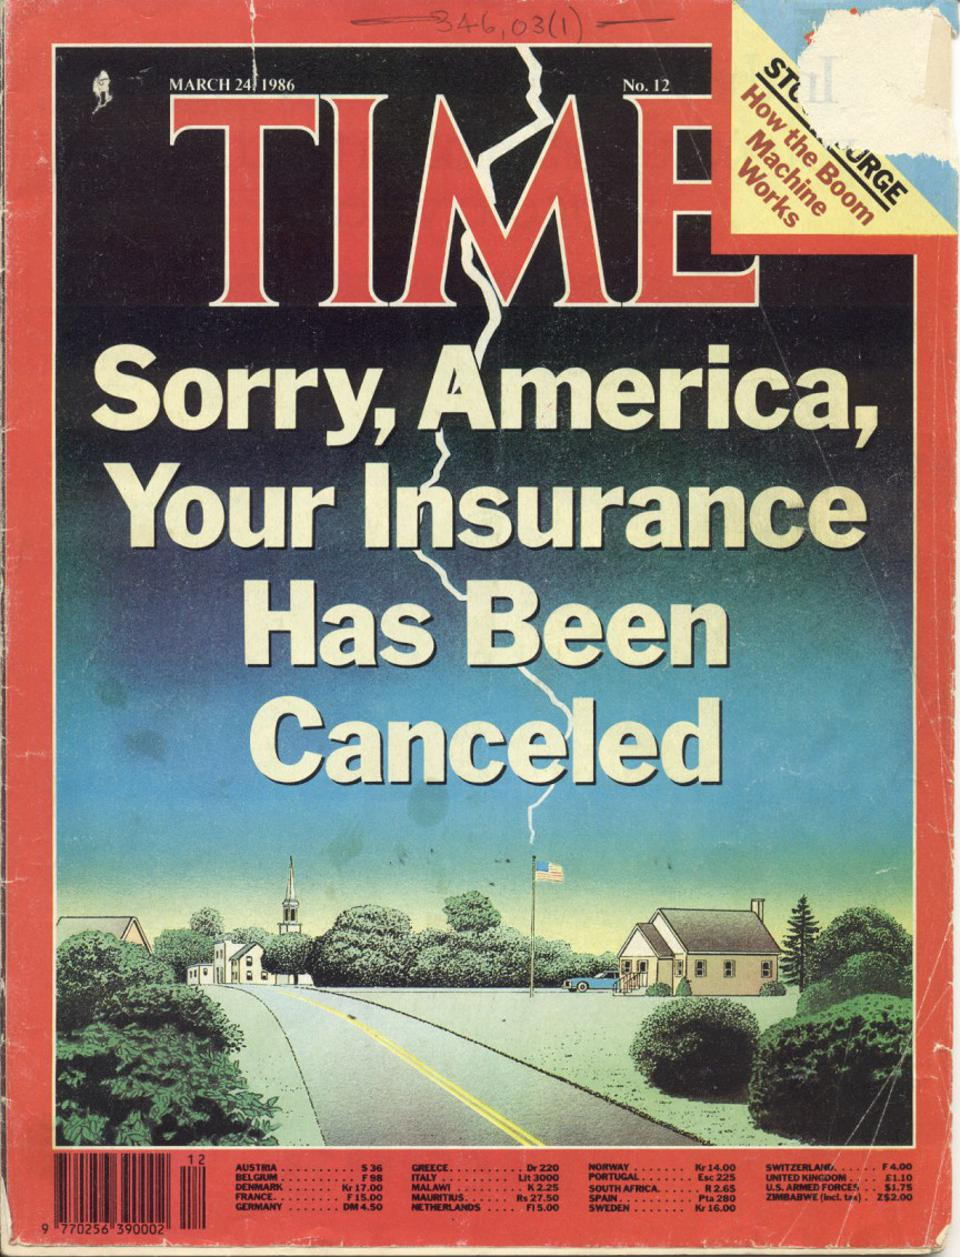 Time Magazine Cover, March 23, 1986